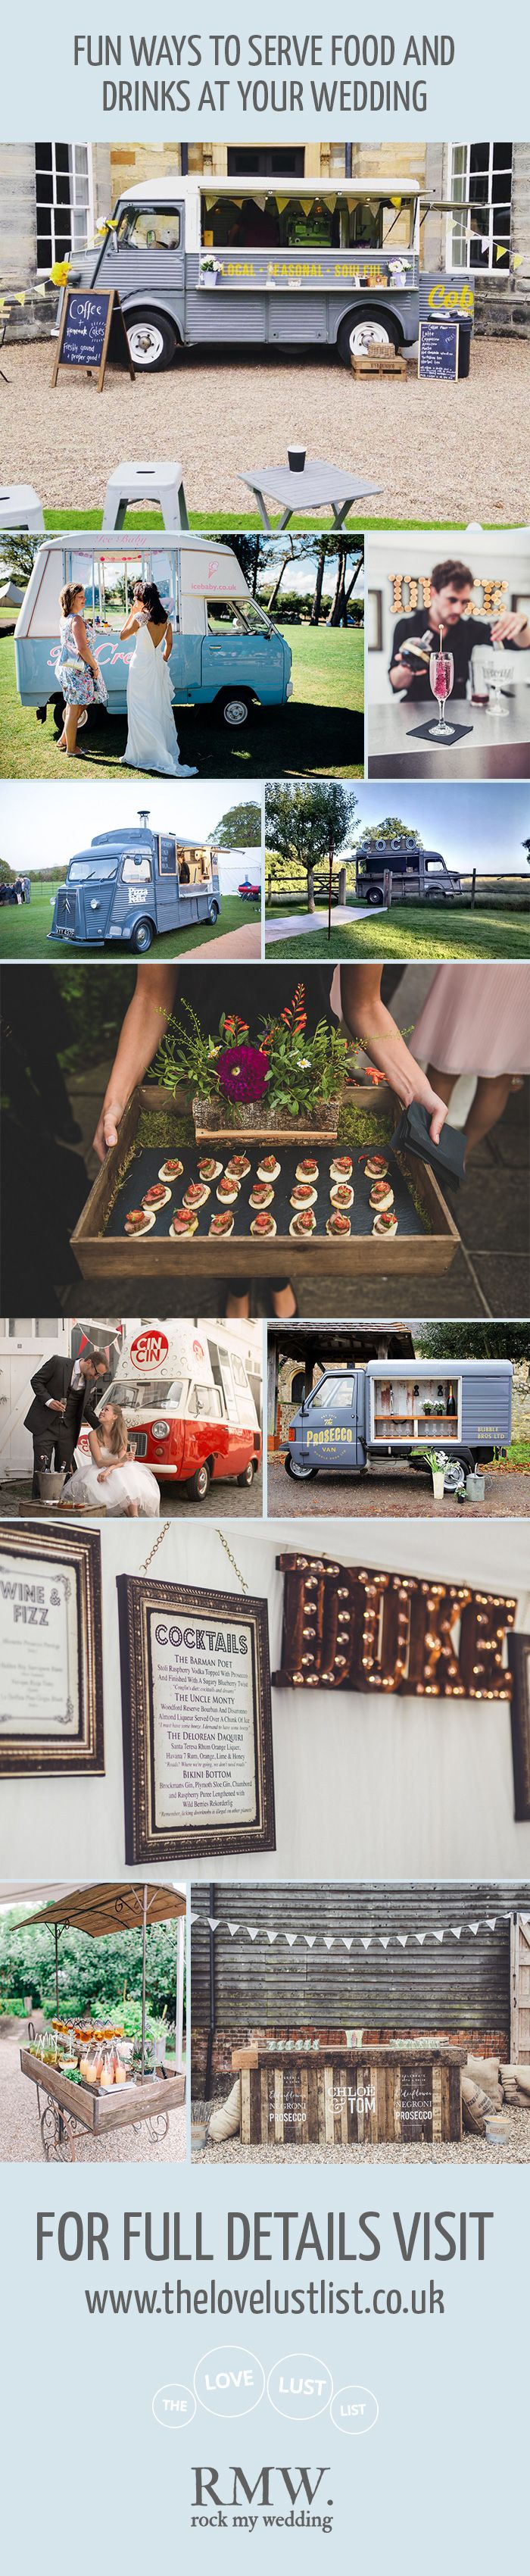 food drink trucks for event wedding hire the love lust list rock